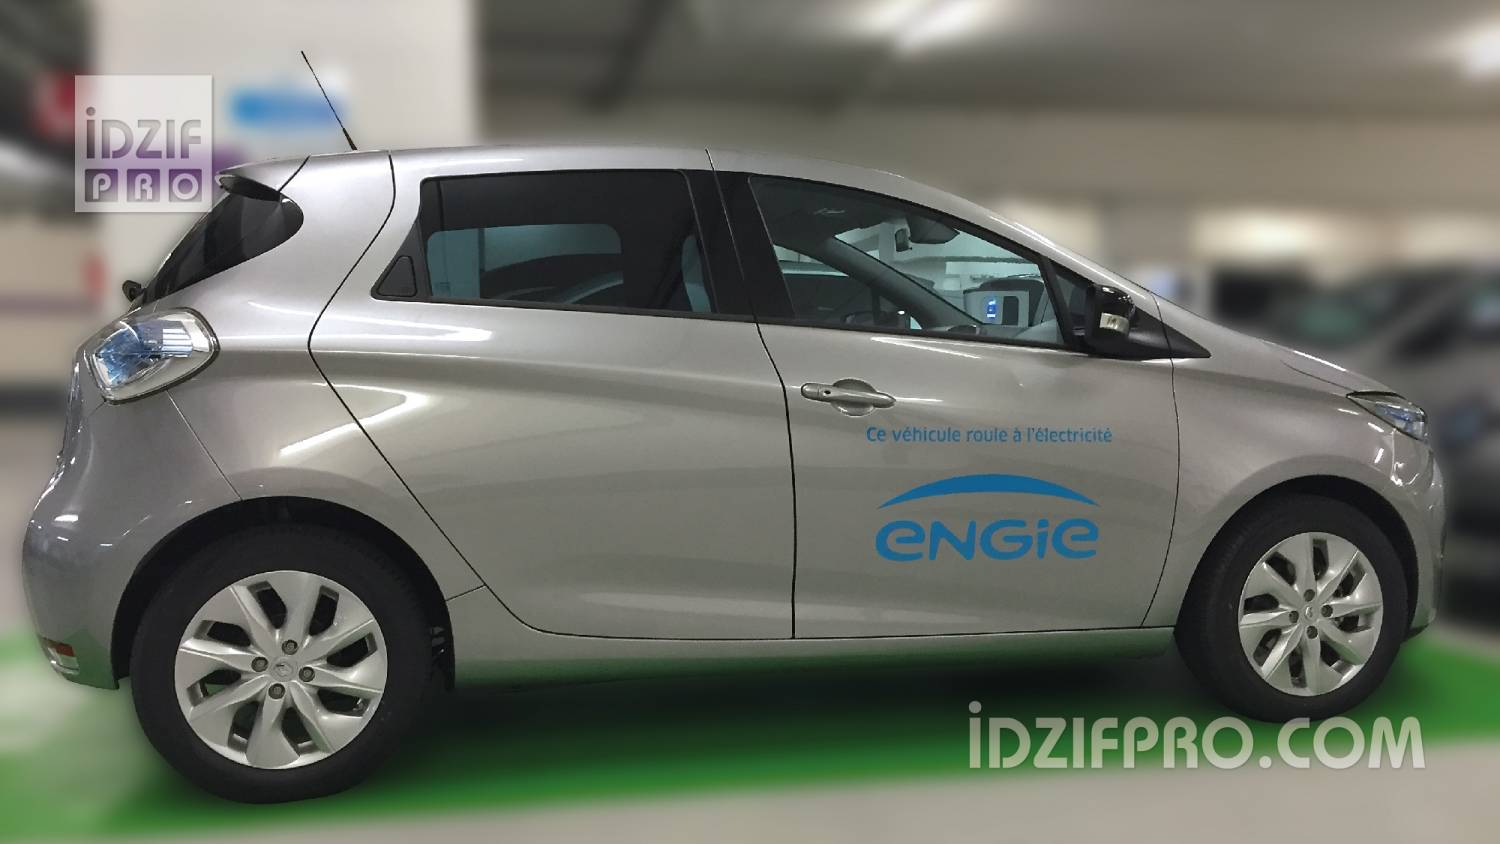 marquage voiture electrique ENGIE iDzifPro